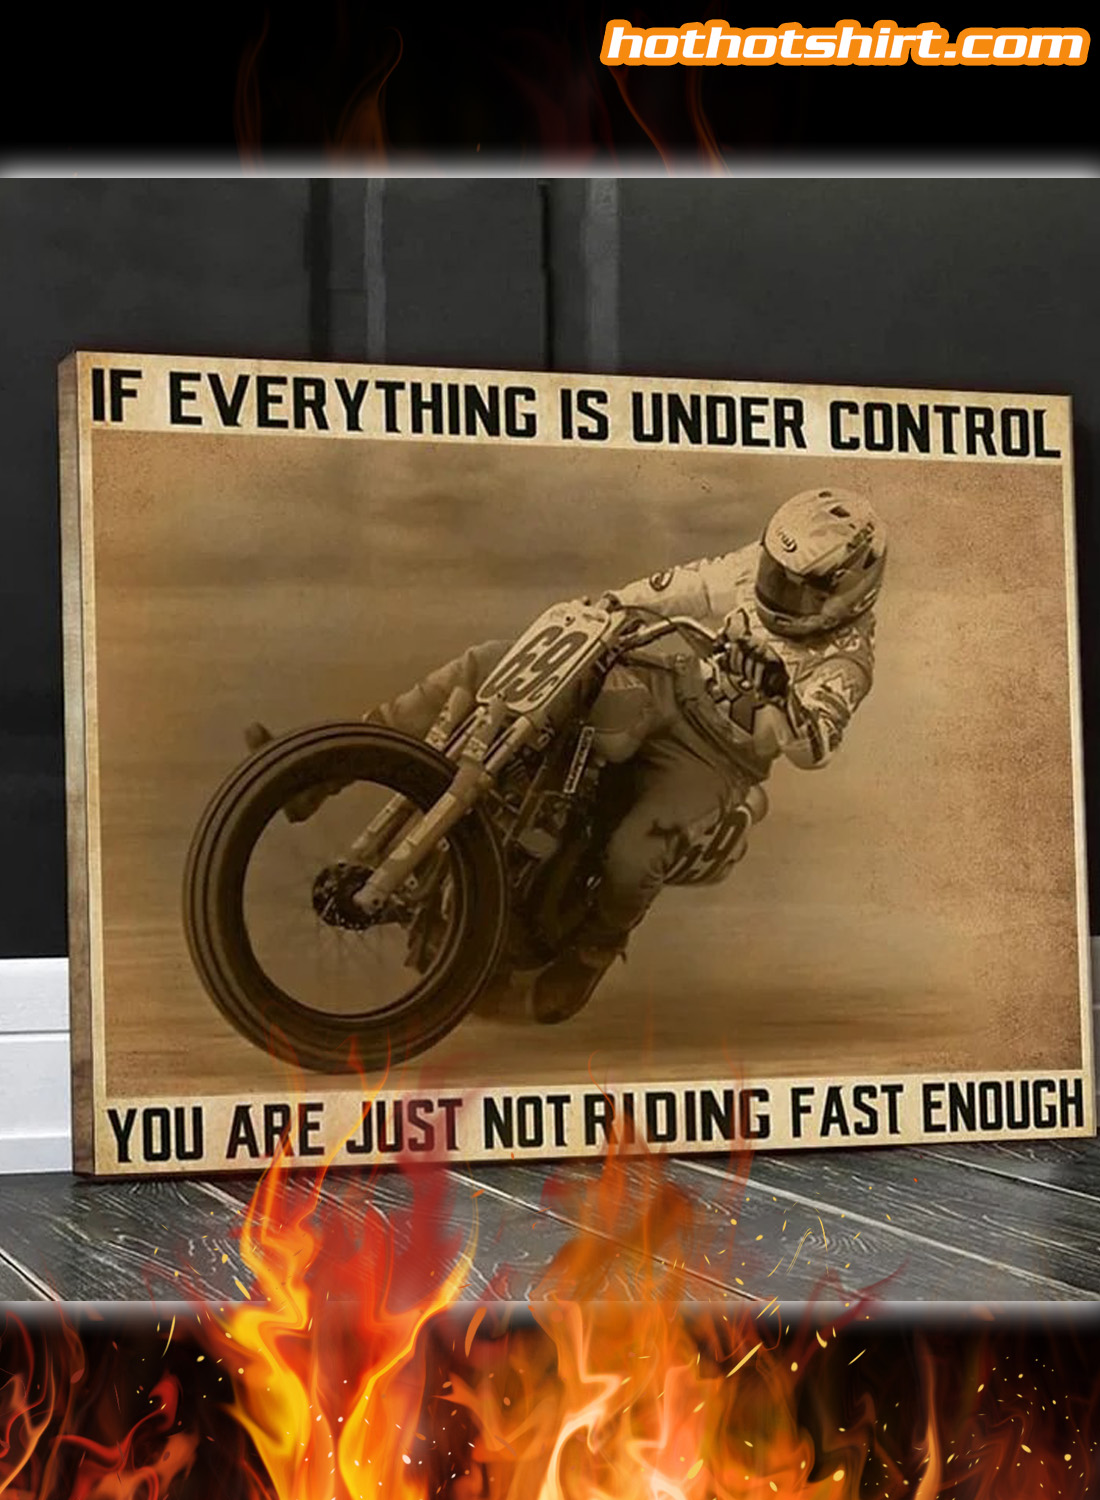 Motorcycle ride faster If everything in under control canvas prints 1